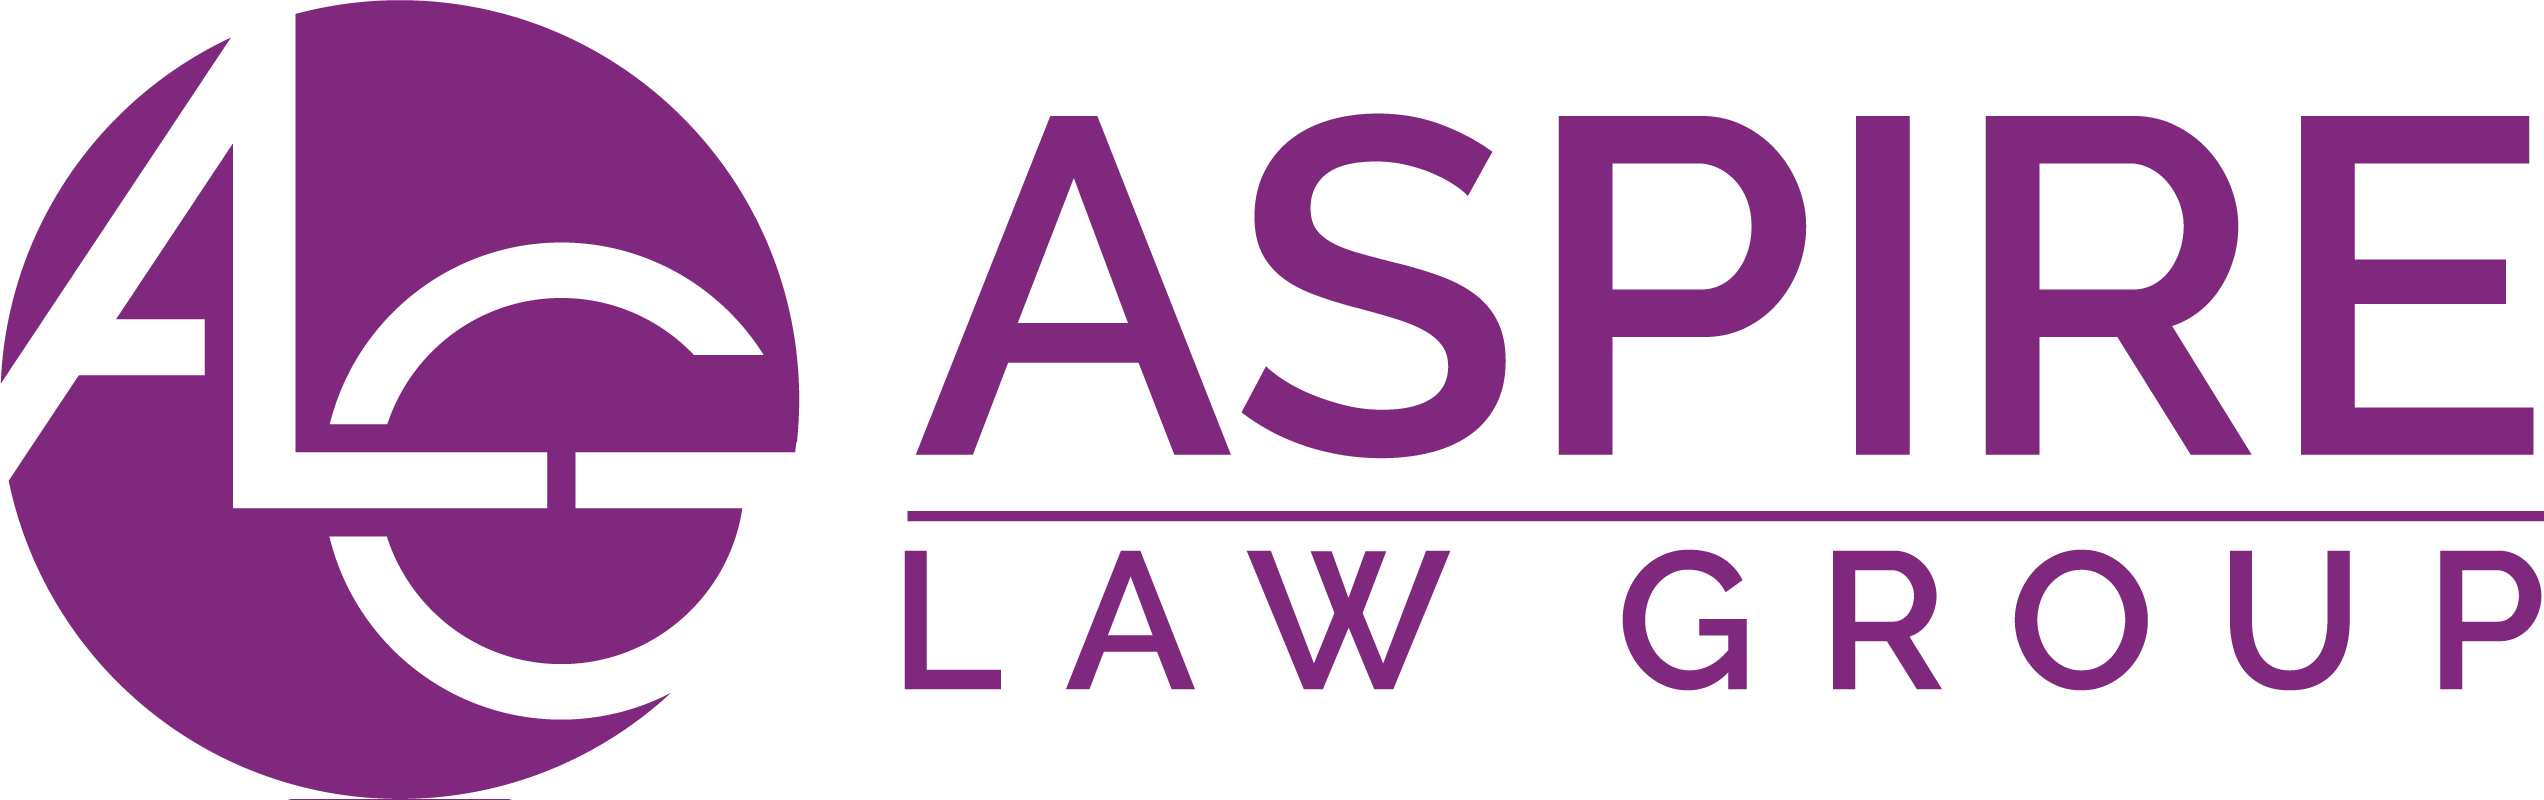 Aspire Law Group